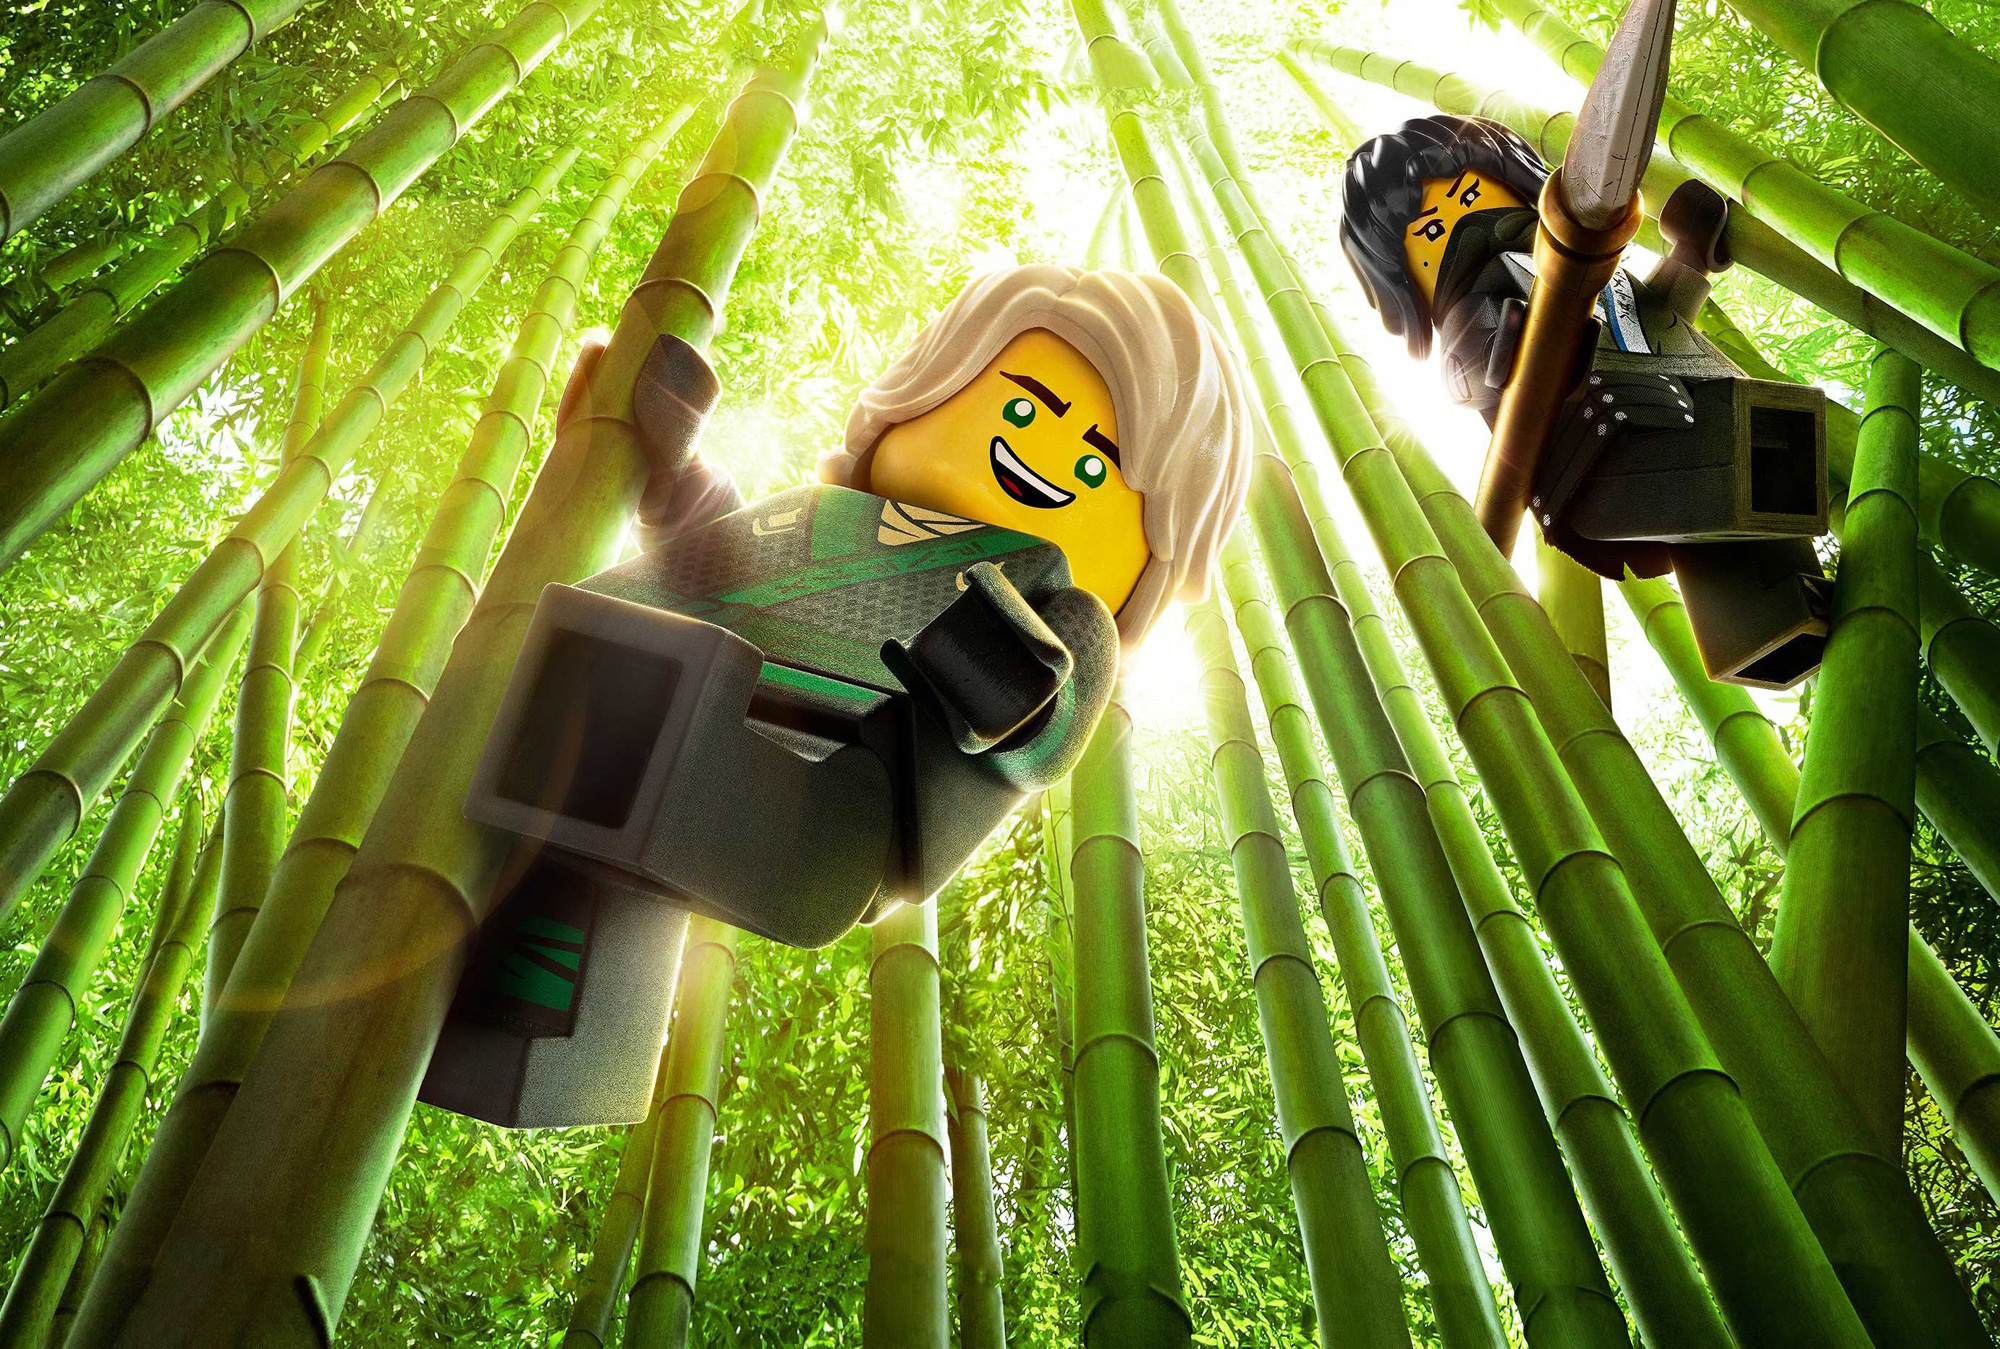 Fondos de pantalla La Lego Ninjago, wallpapers HD